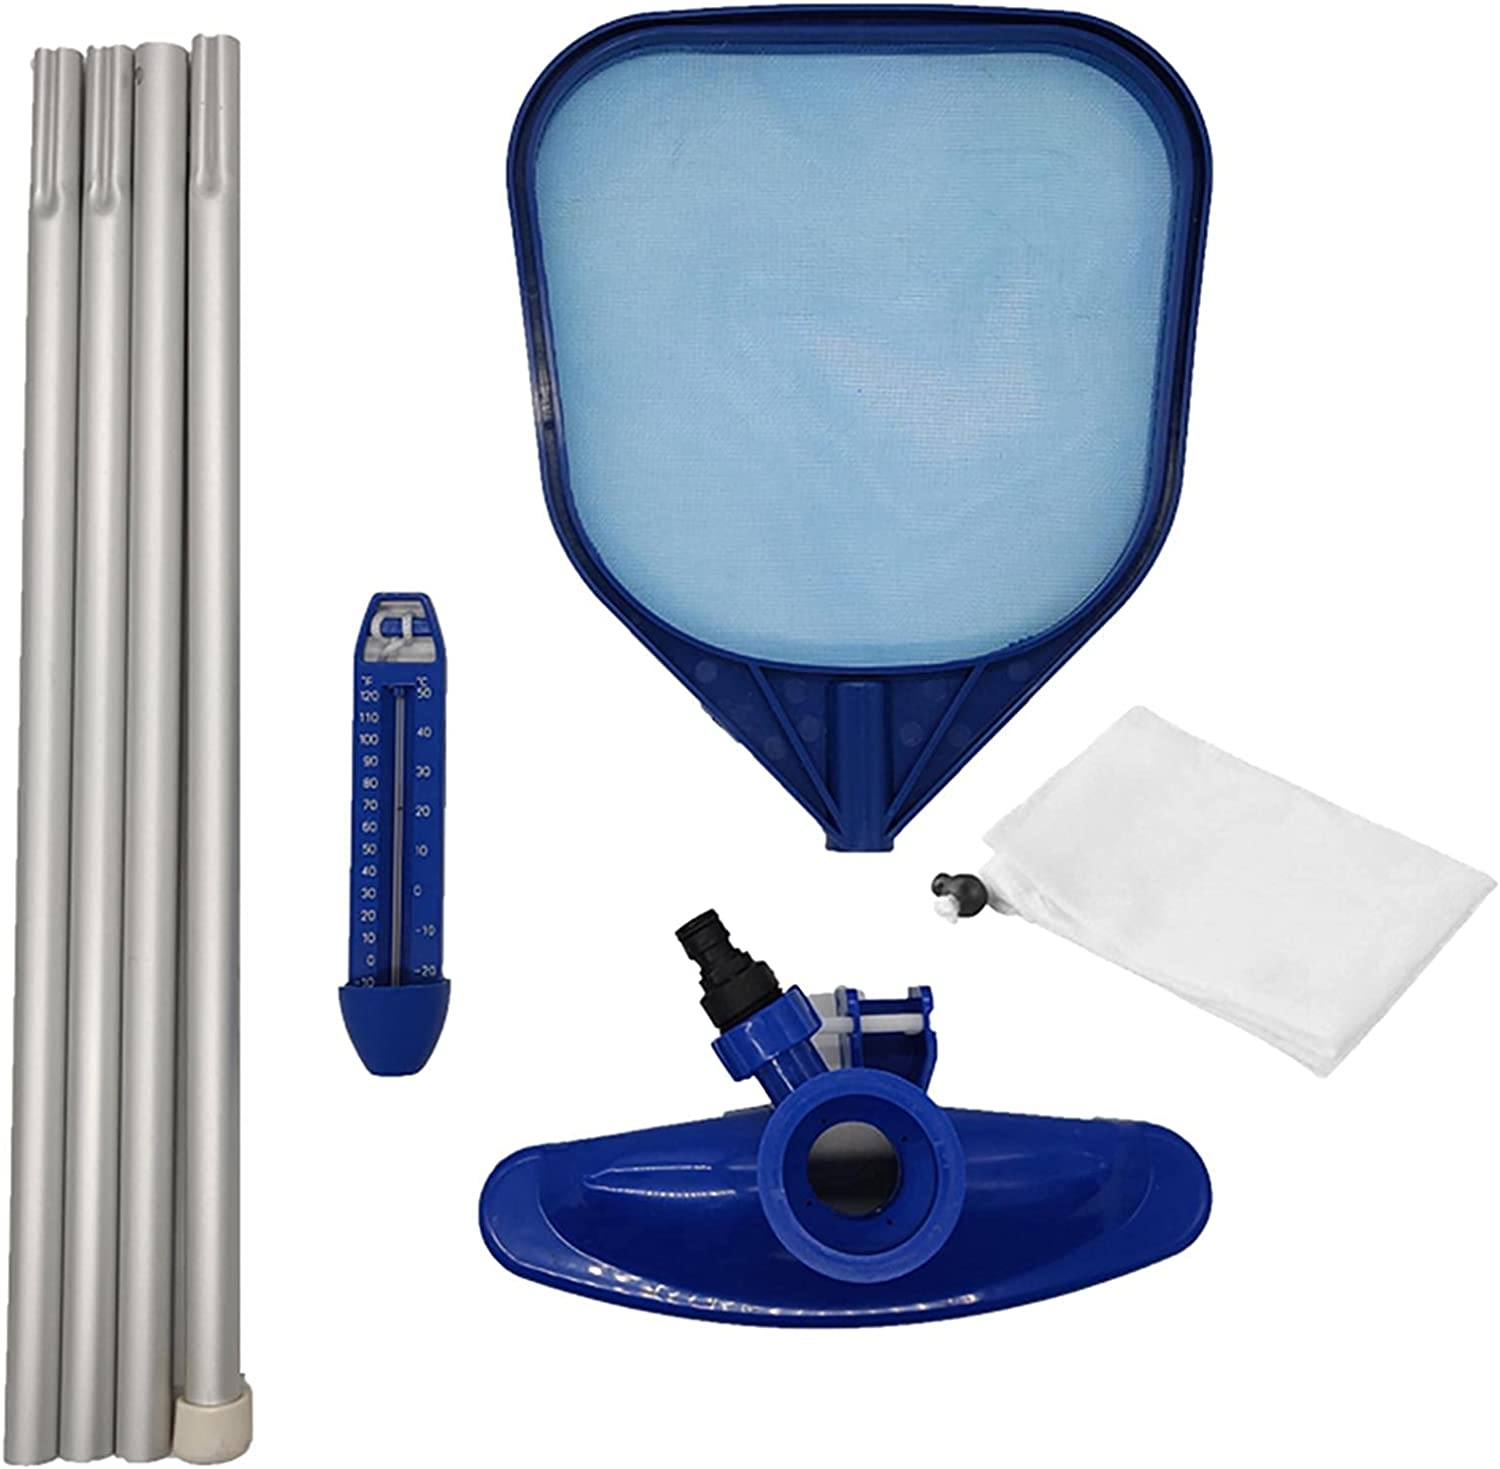 JBTT Professional All items Low price in the store Pool Skimmer Net Section with Aluminum 4 Pole